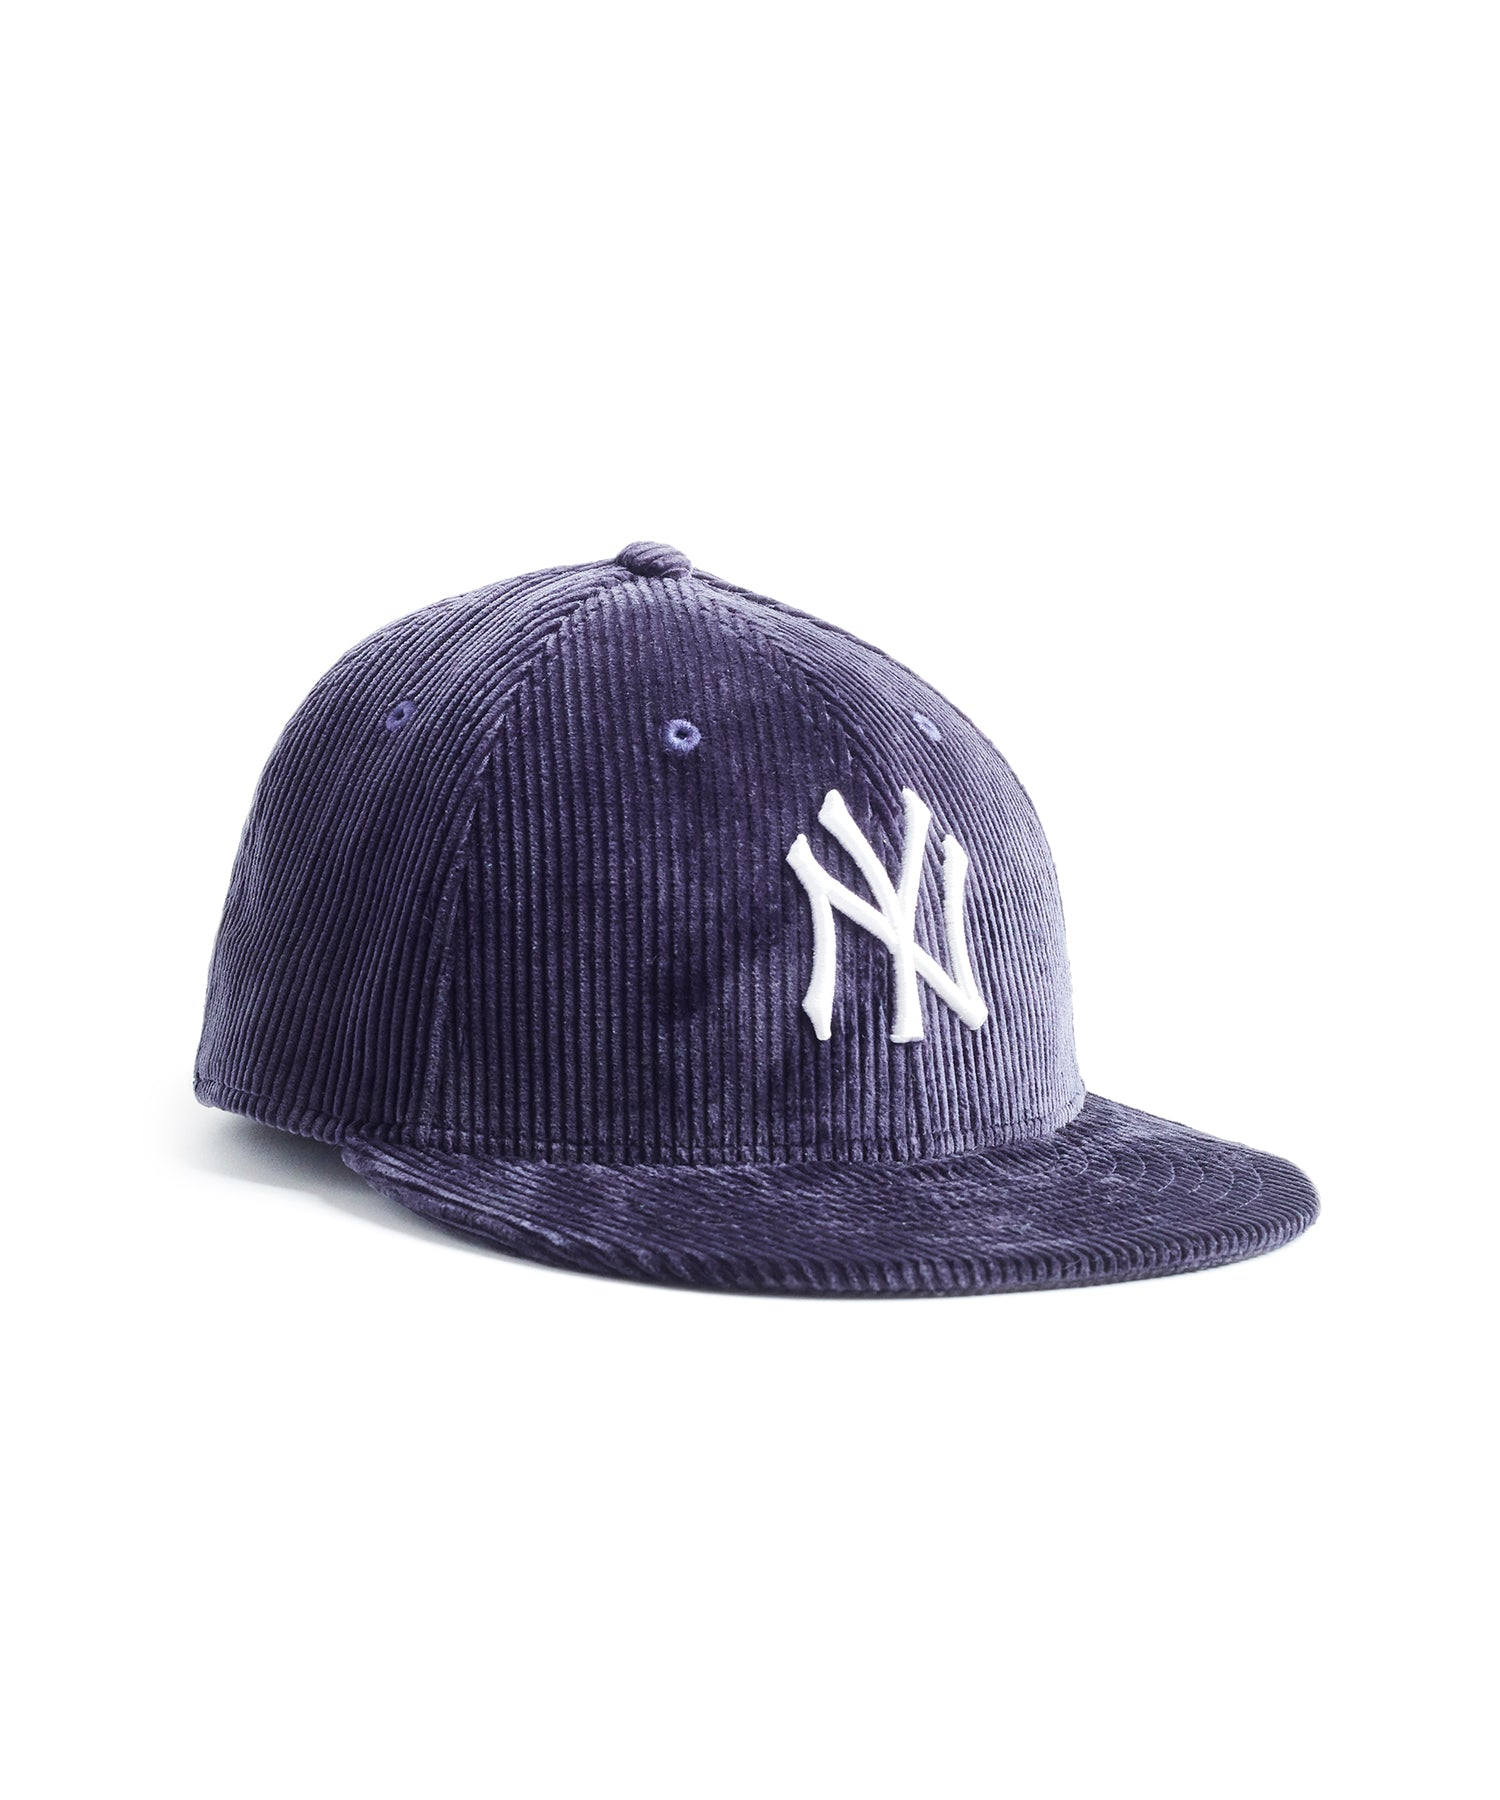 Exclusive Todd Snyder + New Era Corduroy Yankees Cap in Navy